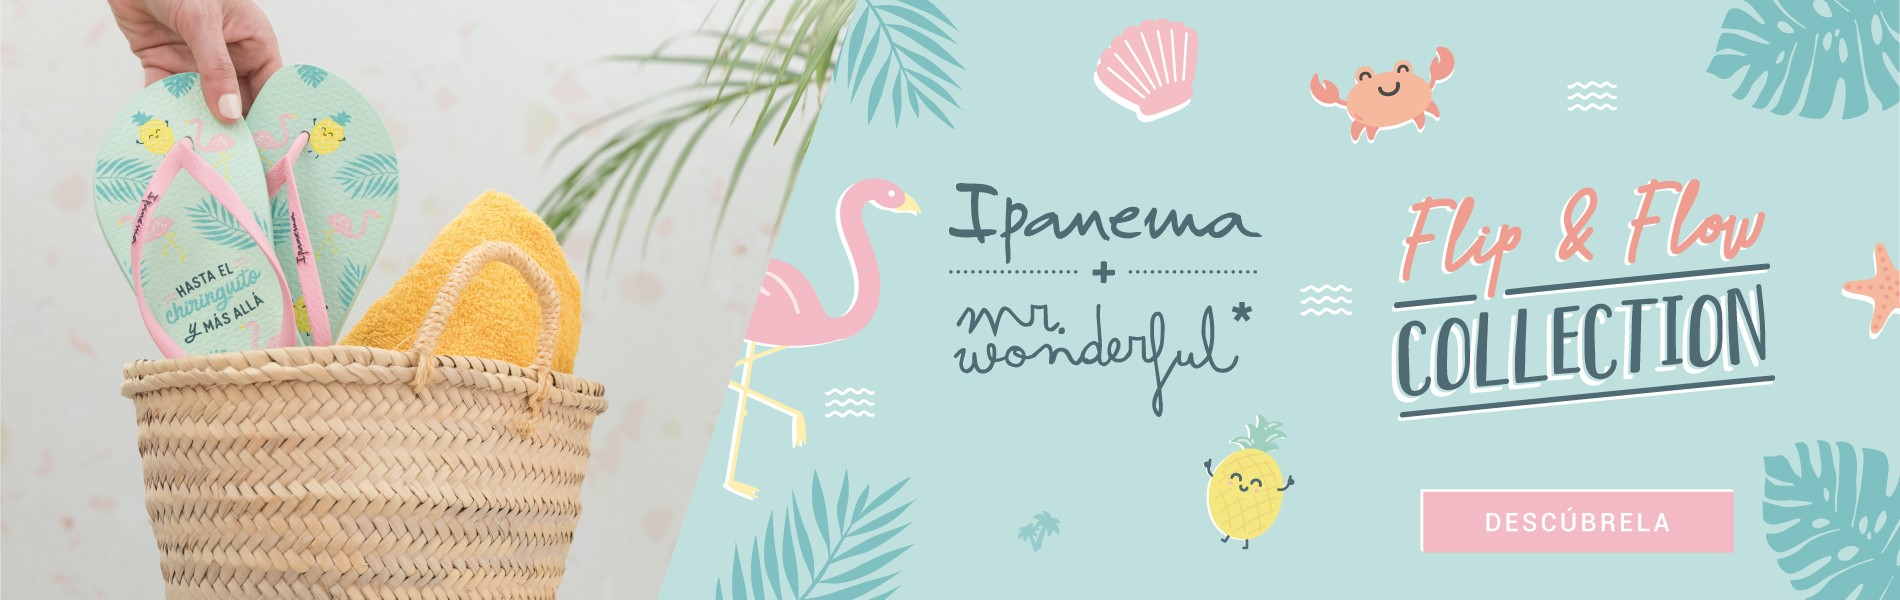 /s/21/ipanema-mr-wonderful